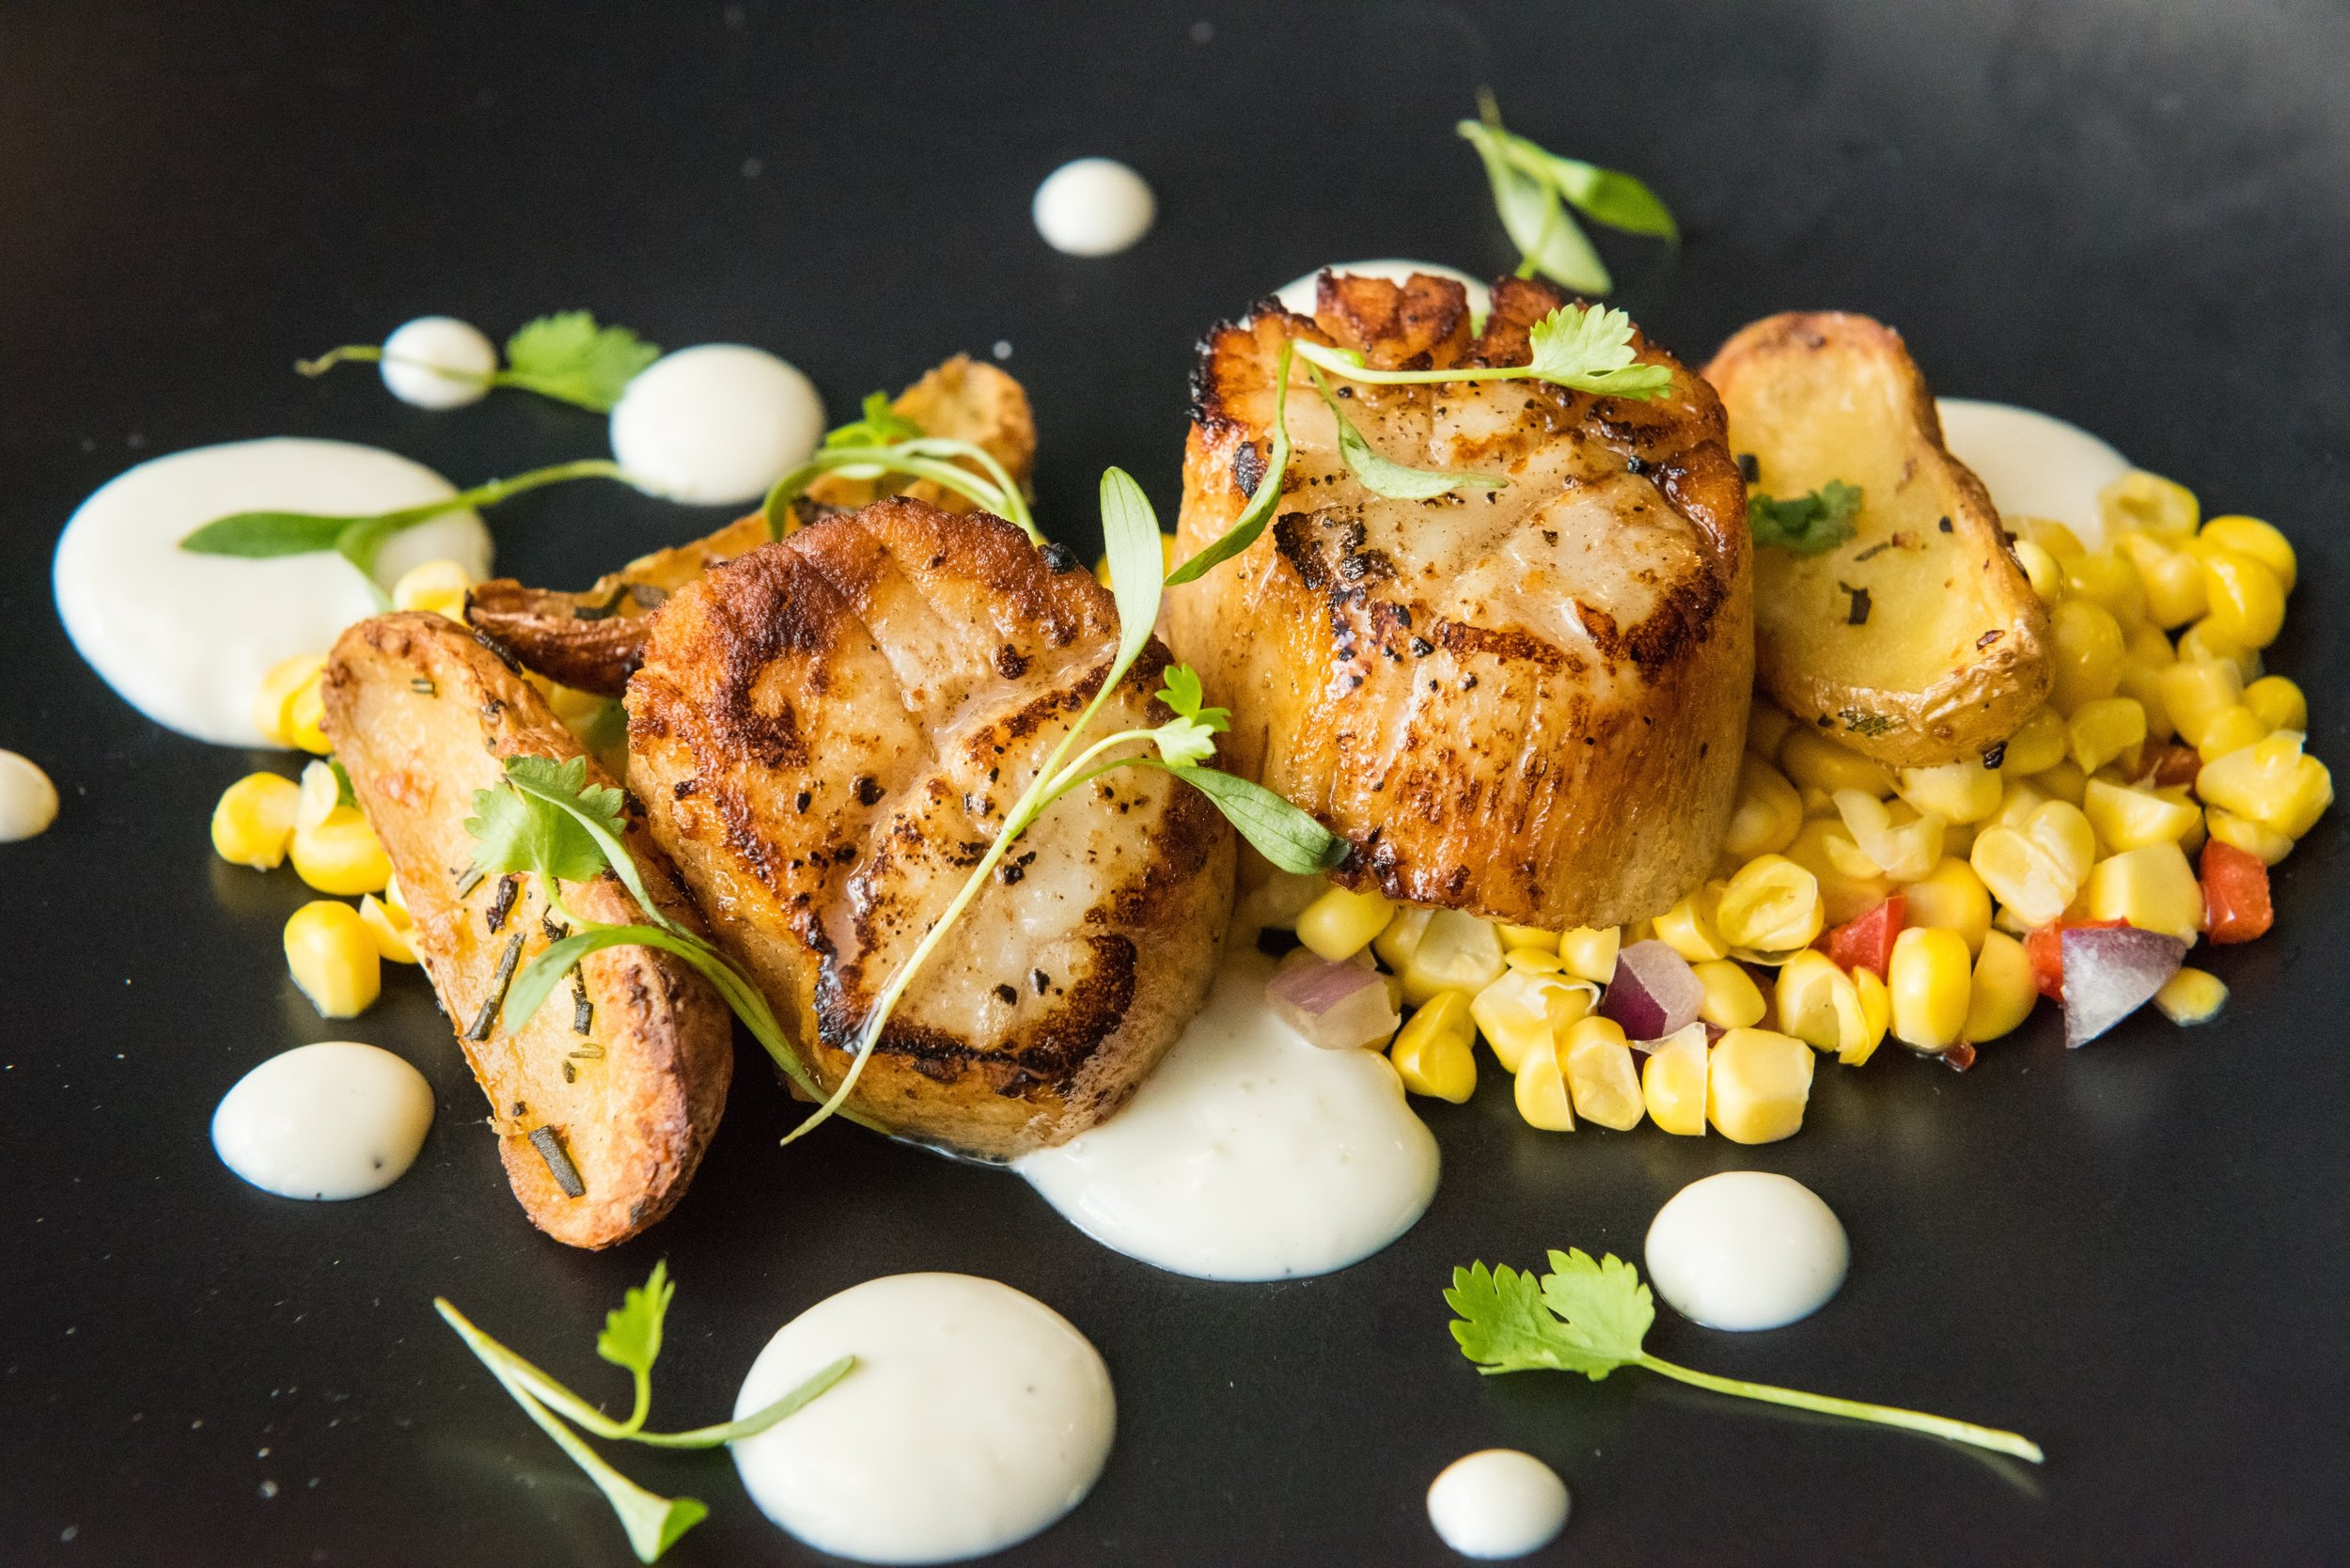 Seared Diver Scallops entree available at Thirsty Mermaid